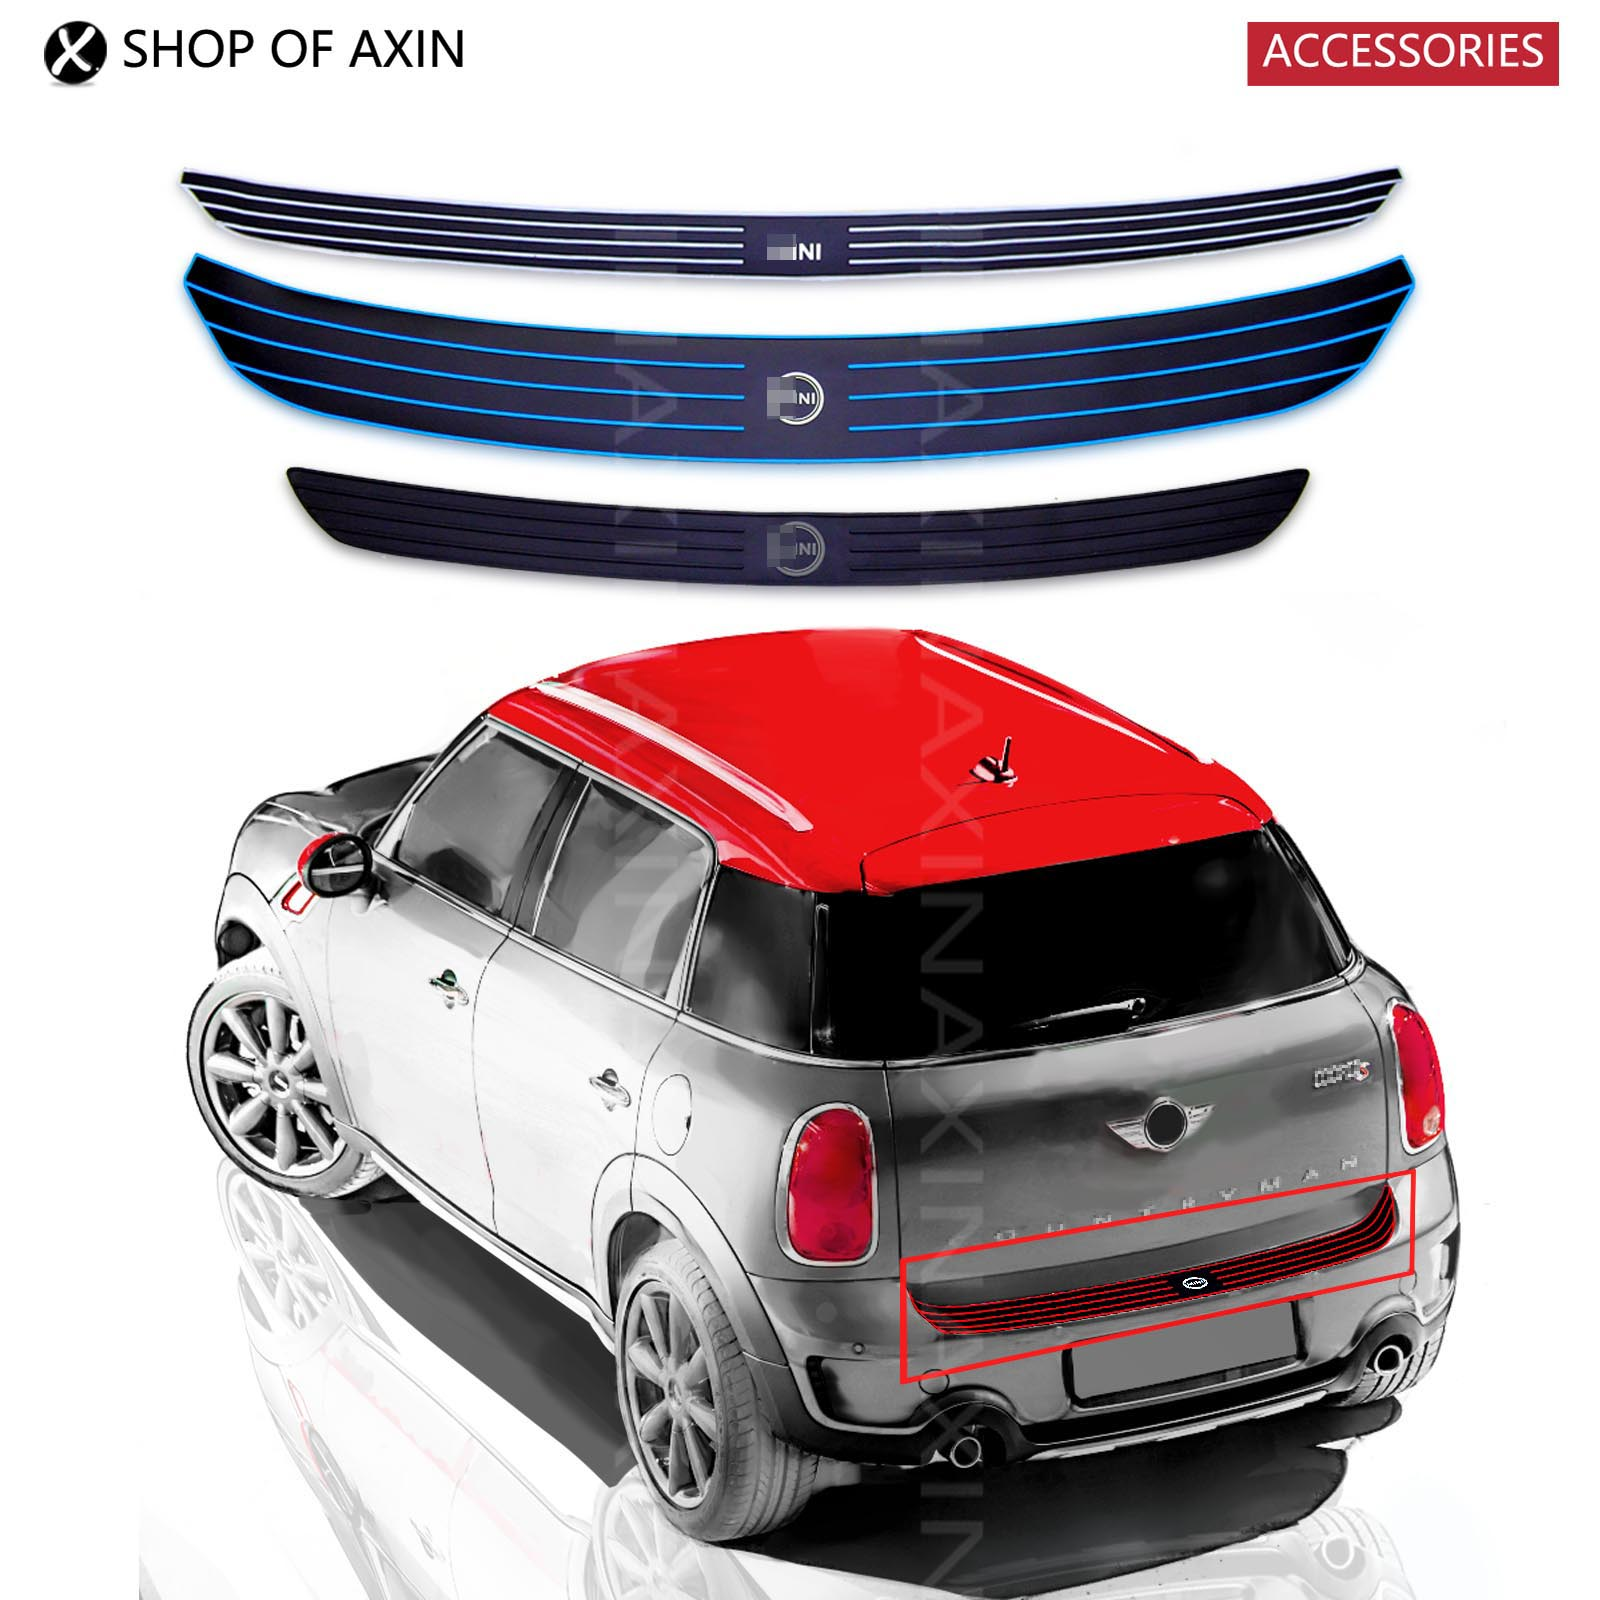 Car rear bumper Trunk load edge Protector guard Rubber Trim sticker for MINI cooper clubman countryman R55 R56 R57 R60 F55 F56 sun protection cool hat car logo for mini cooper s r53 r56 r60 f55 f56 r55 f60 clubman countryman roadster paceman car styling